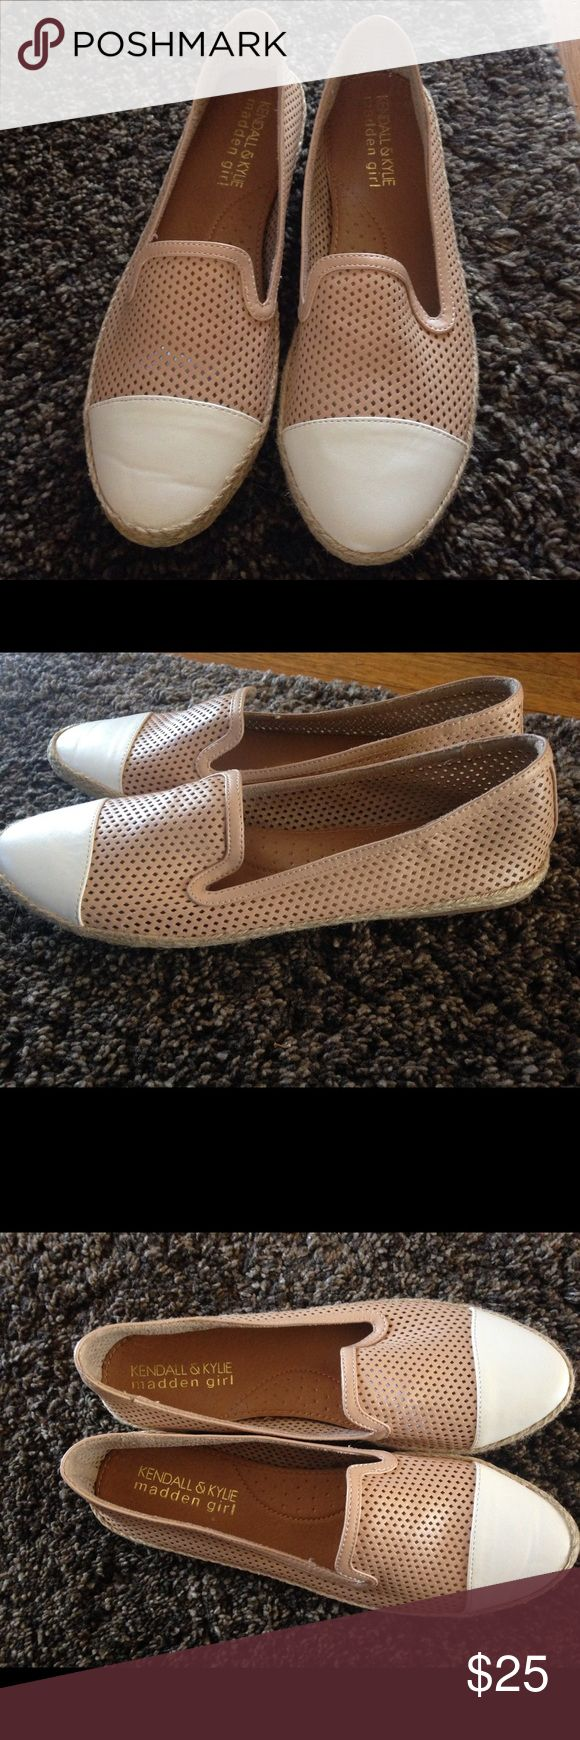 Kendall and Kylie shoes. Size 9. Cute flats. New without box. Minor issue with crease on the front right leather but barely noticeable when worn. Kendall & Kylie Shoes Flats & Loafers